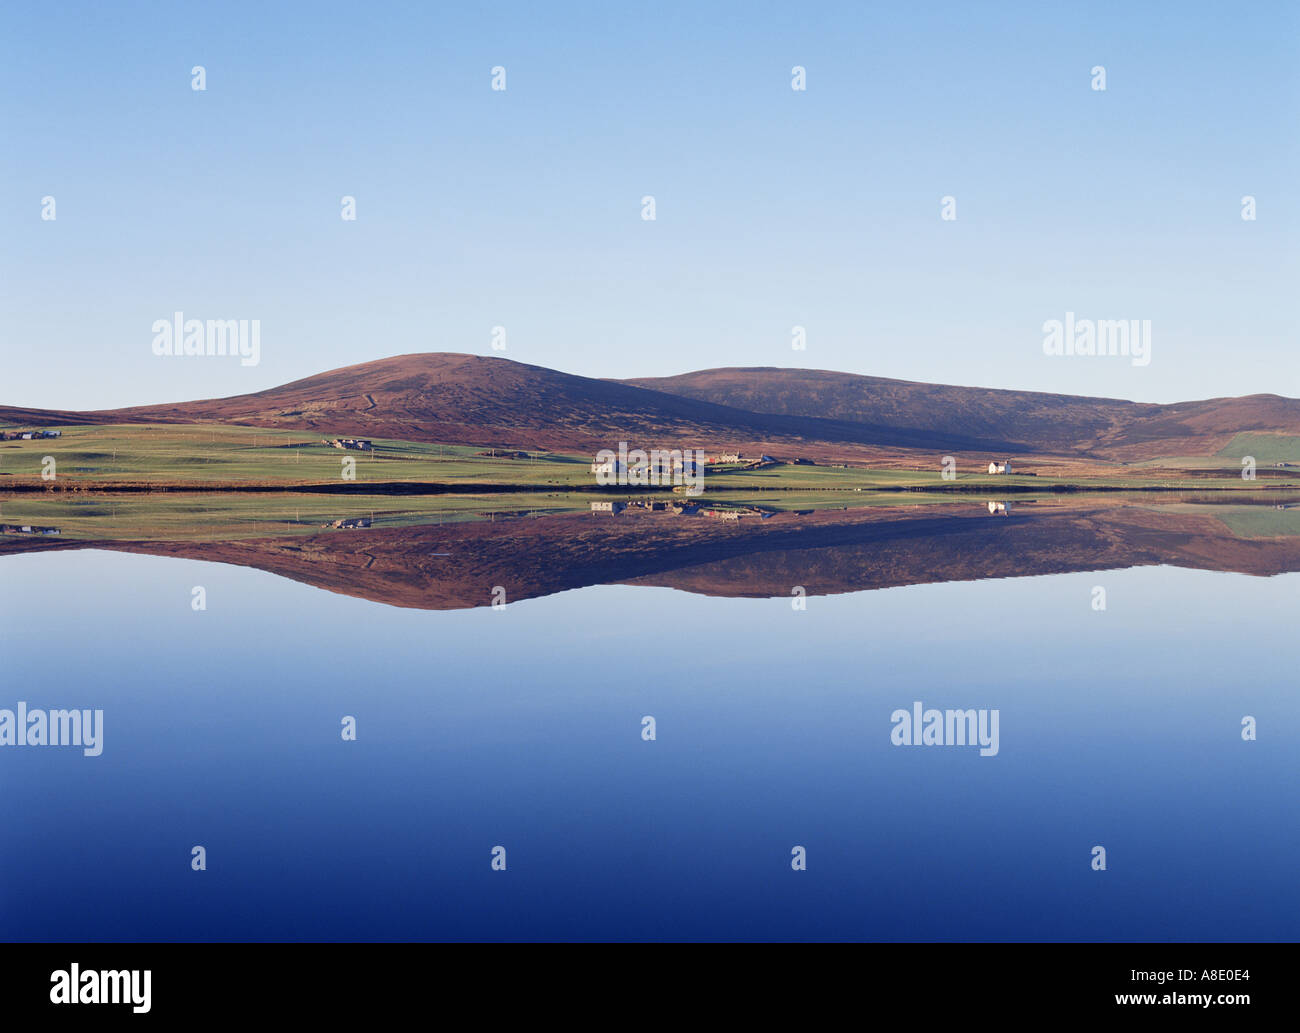 dh Kirbister Loch ORPHIR ORKNEY NOSW reservoir farm and cottages Stock Photo